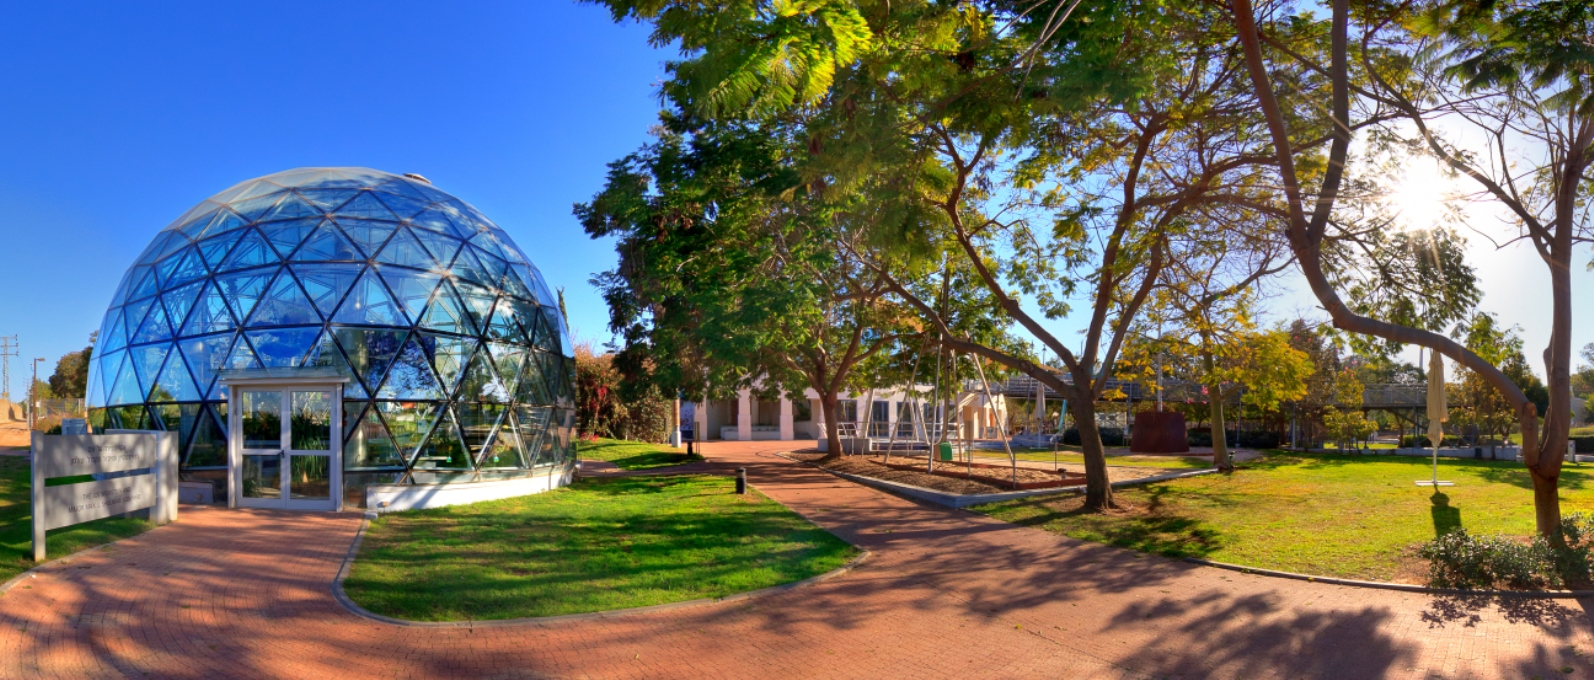 The-Clore-Garden-of-Science